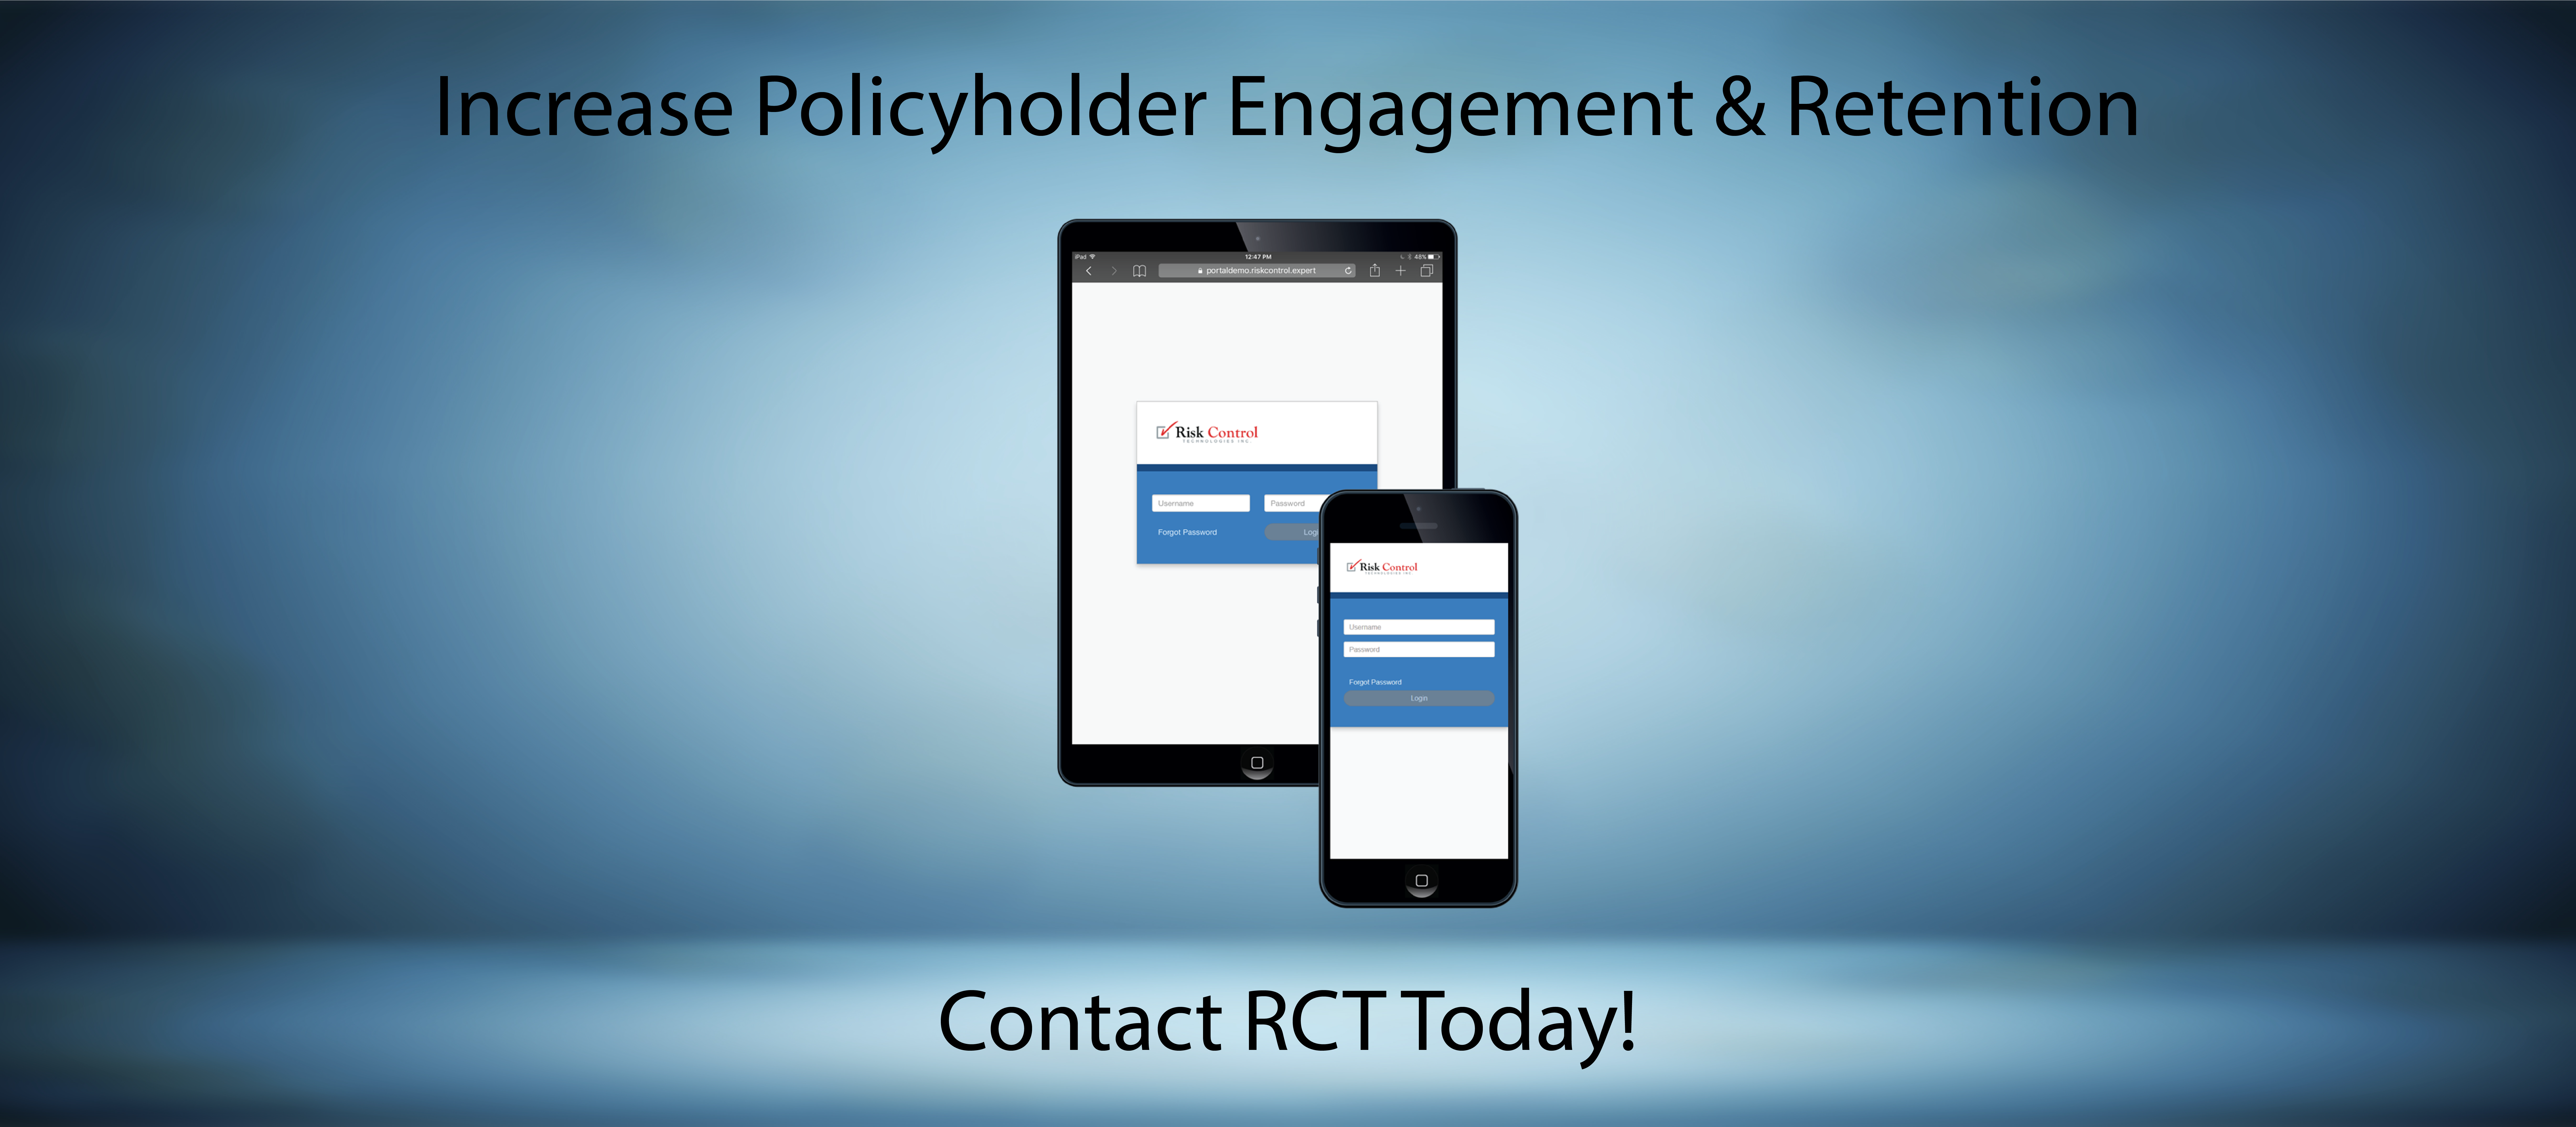 Increase Policyholder Engagement and Retention